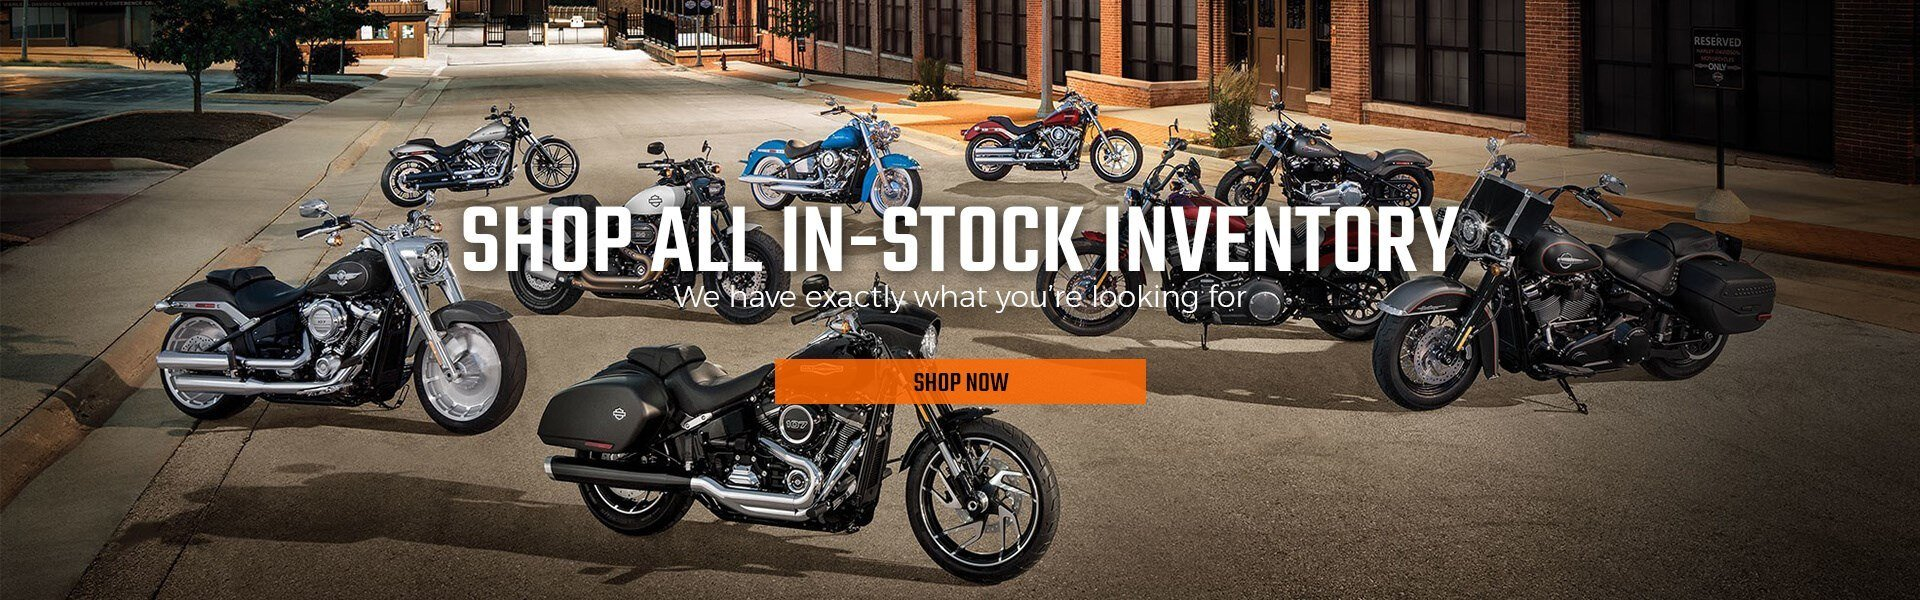 Shop In-Stock Inventory at North Country Harley-Davidson